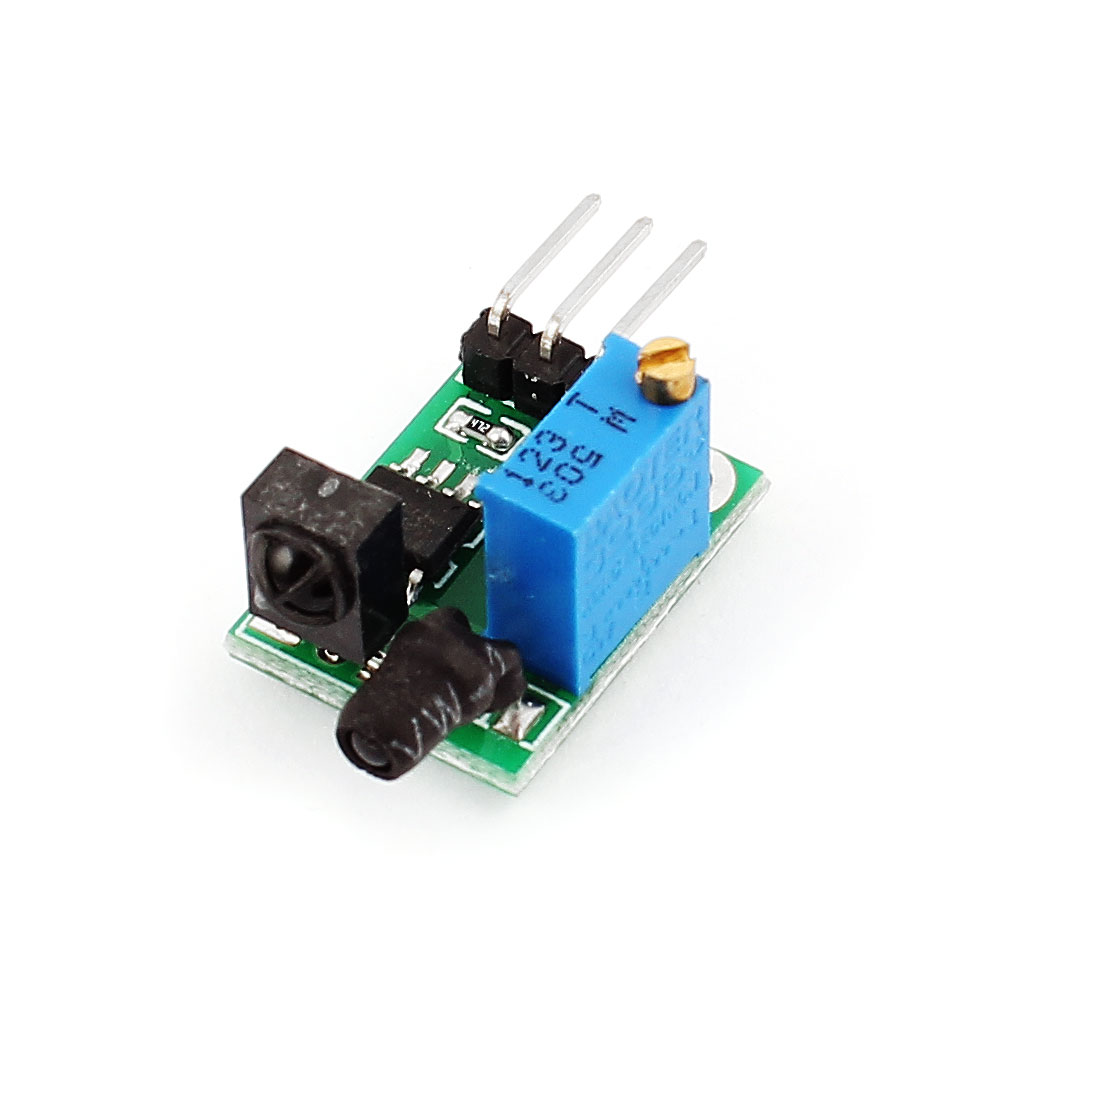 DC 3.8-5.5V 6mA 3-100cm IR Infrared Digital Obstacle Avoidance Sensor